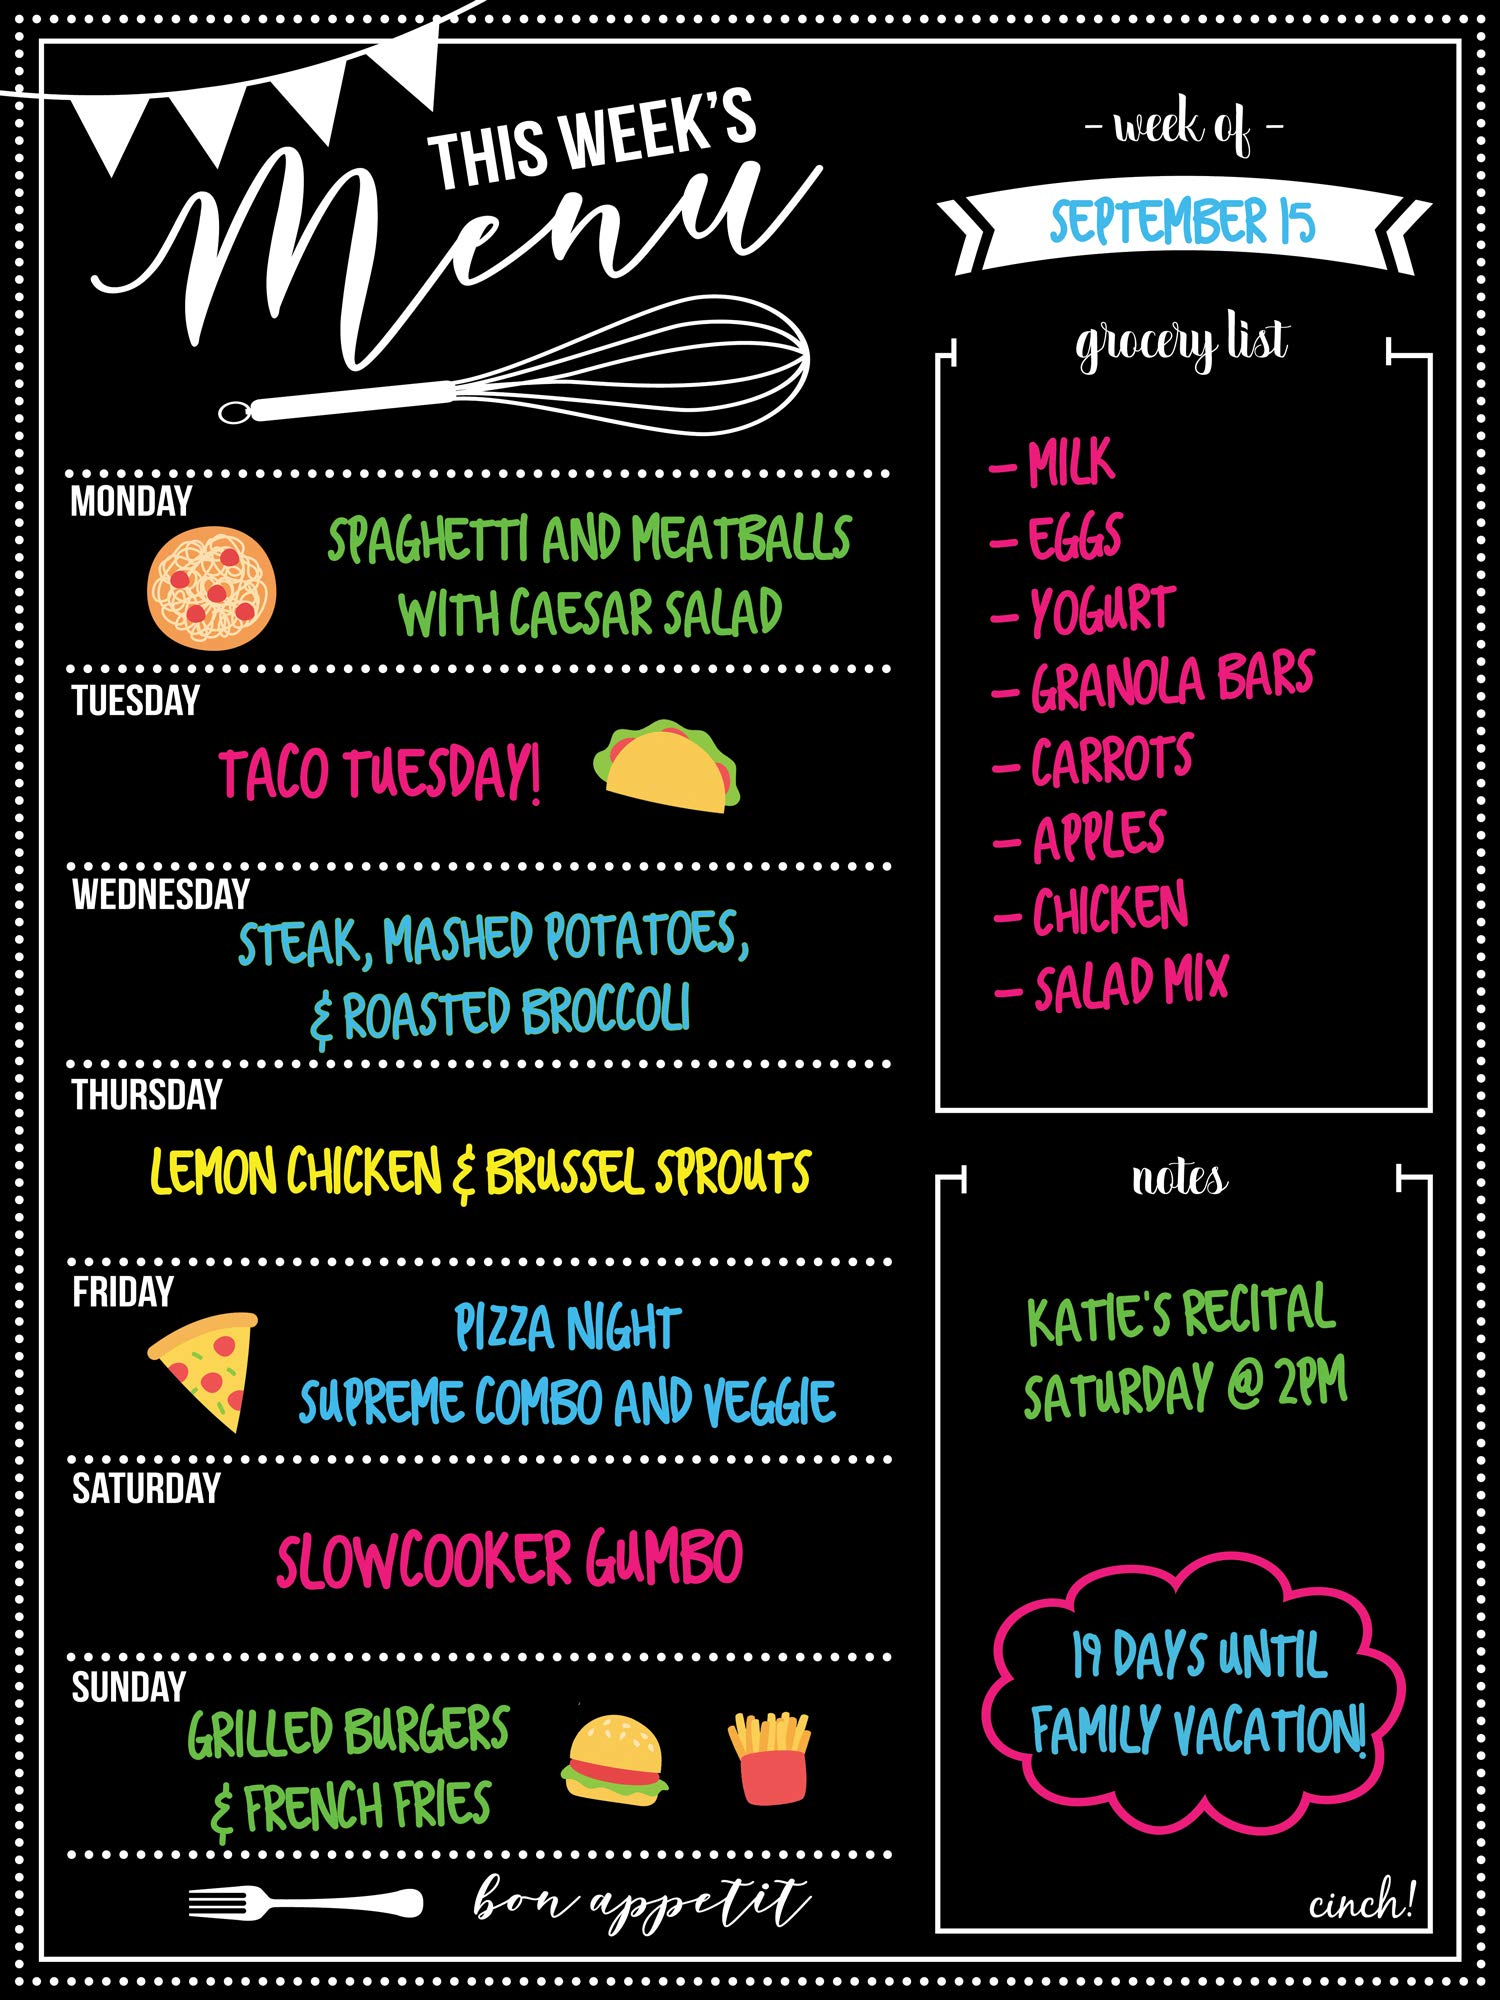 Magnetic Dry Erase Menu Board for Fridge: with Bright Neon Chalk Markers - 16x12'' - Weekly Meal Planner Blackboard and Grocery List Notepad for Kitchen Refrigerator - Whiteboard Chalkboard Magnet by cinch! (Image #2)